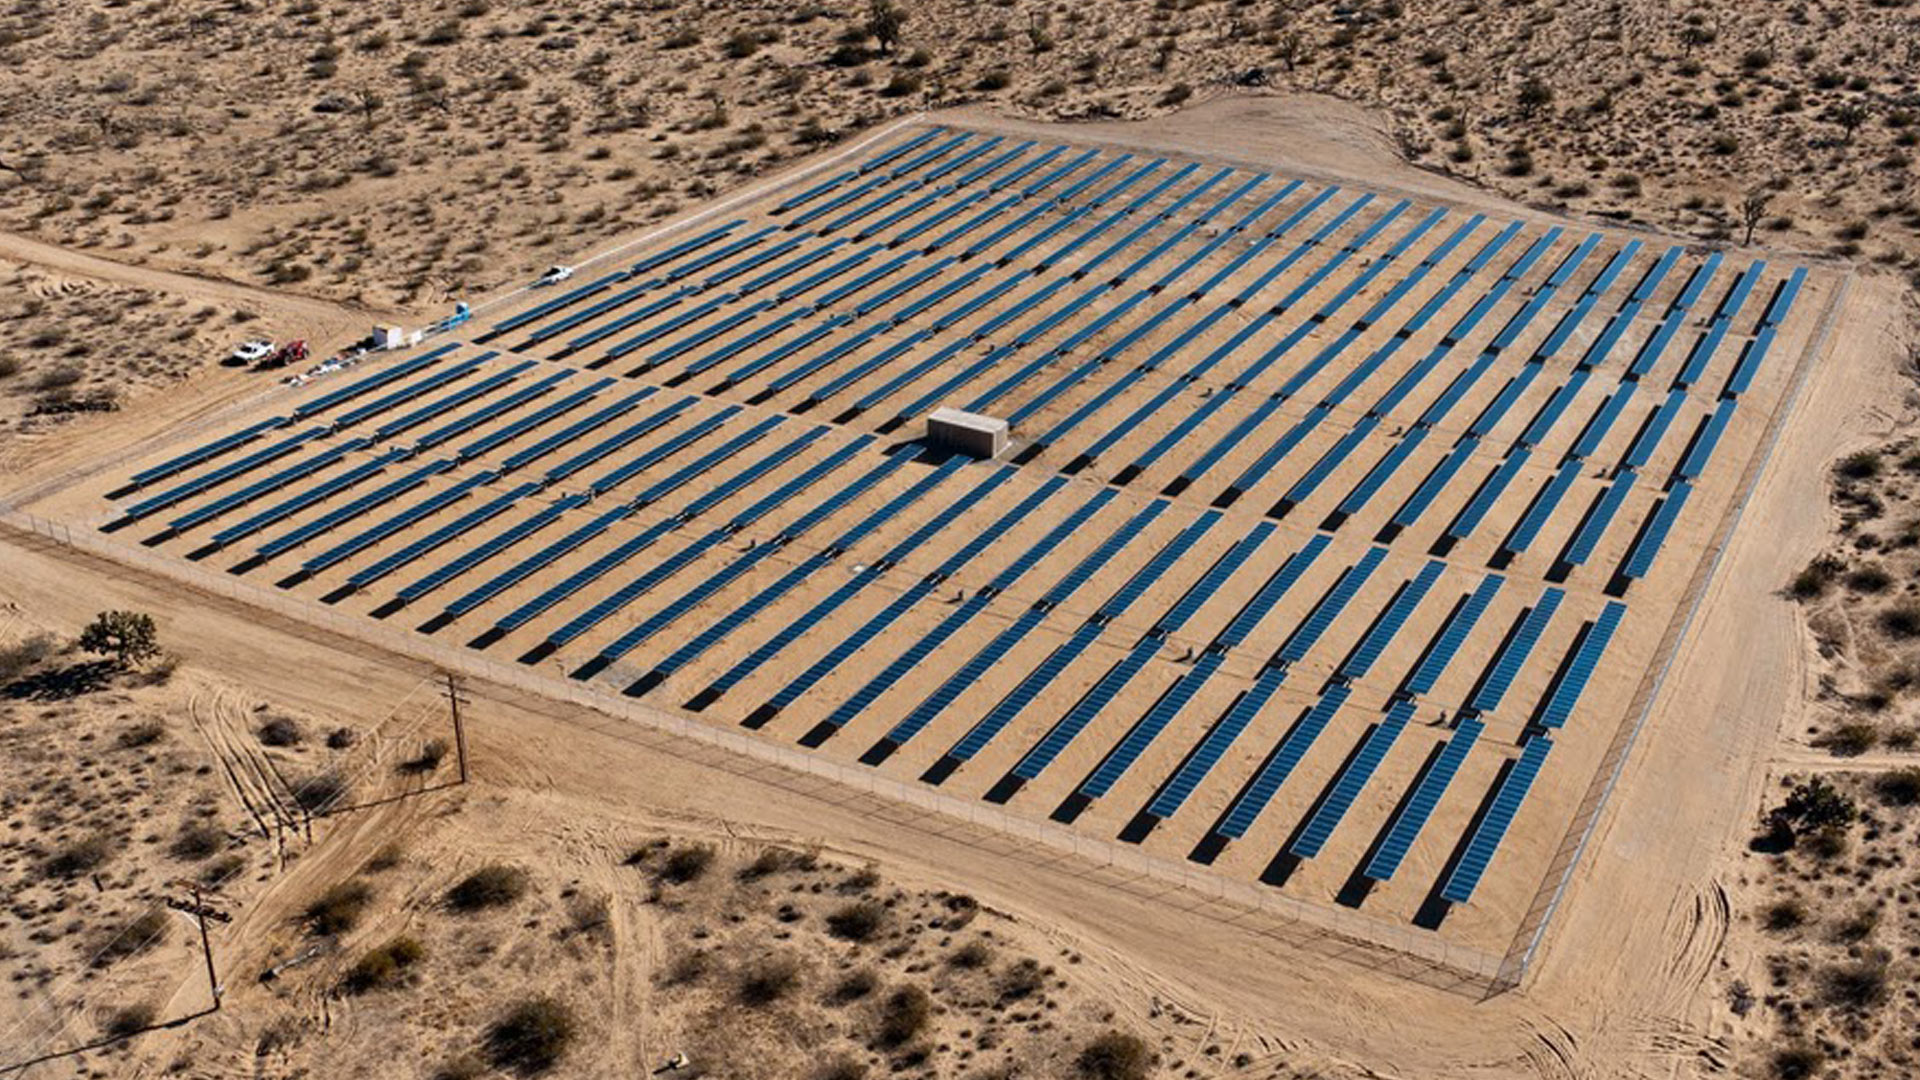 solar panels in a desert setting